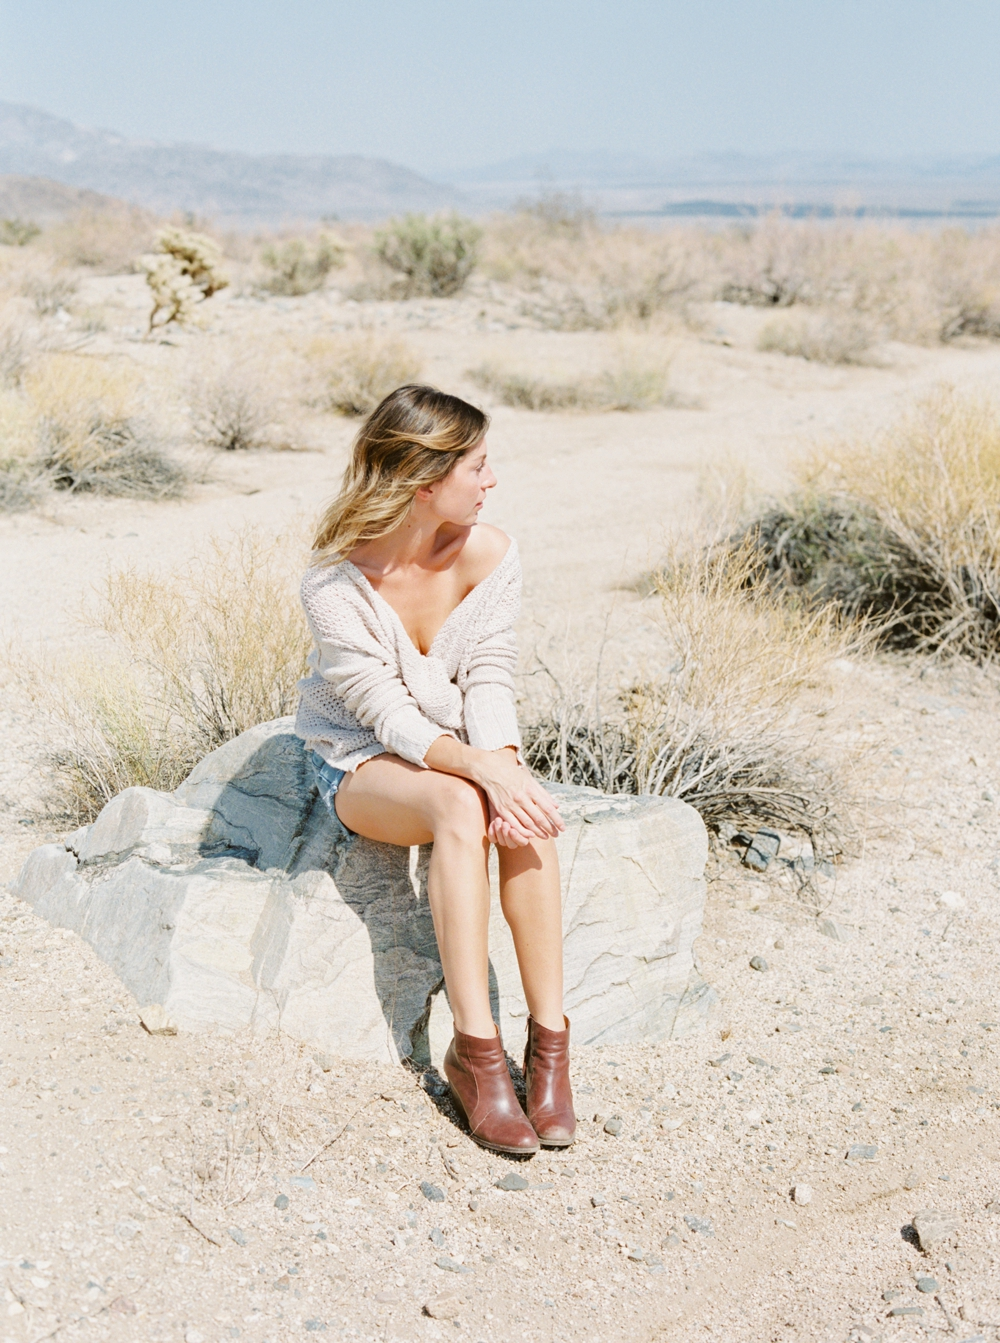 Gentle Fawn |  Calgary fashion blogger brand ambassador | Calgary fashion photographers | California travel road trip